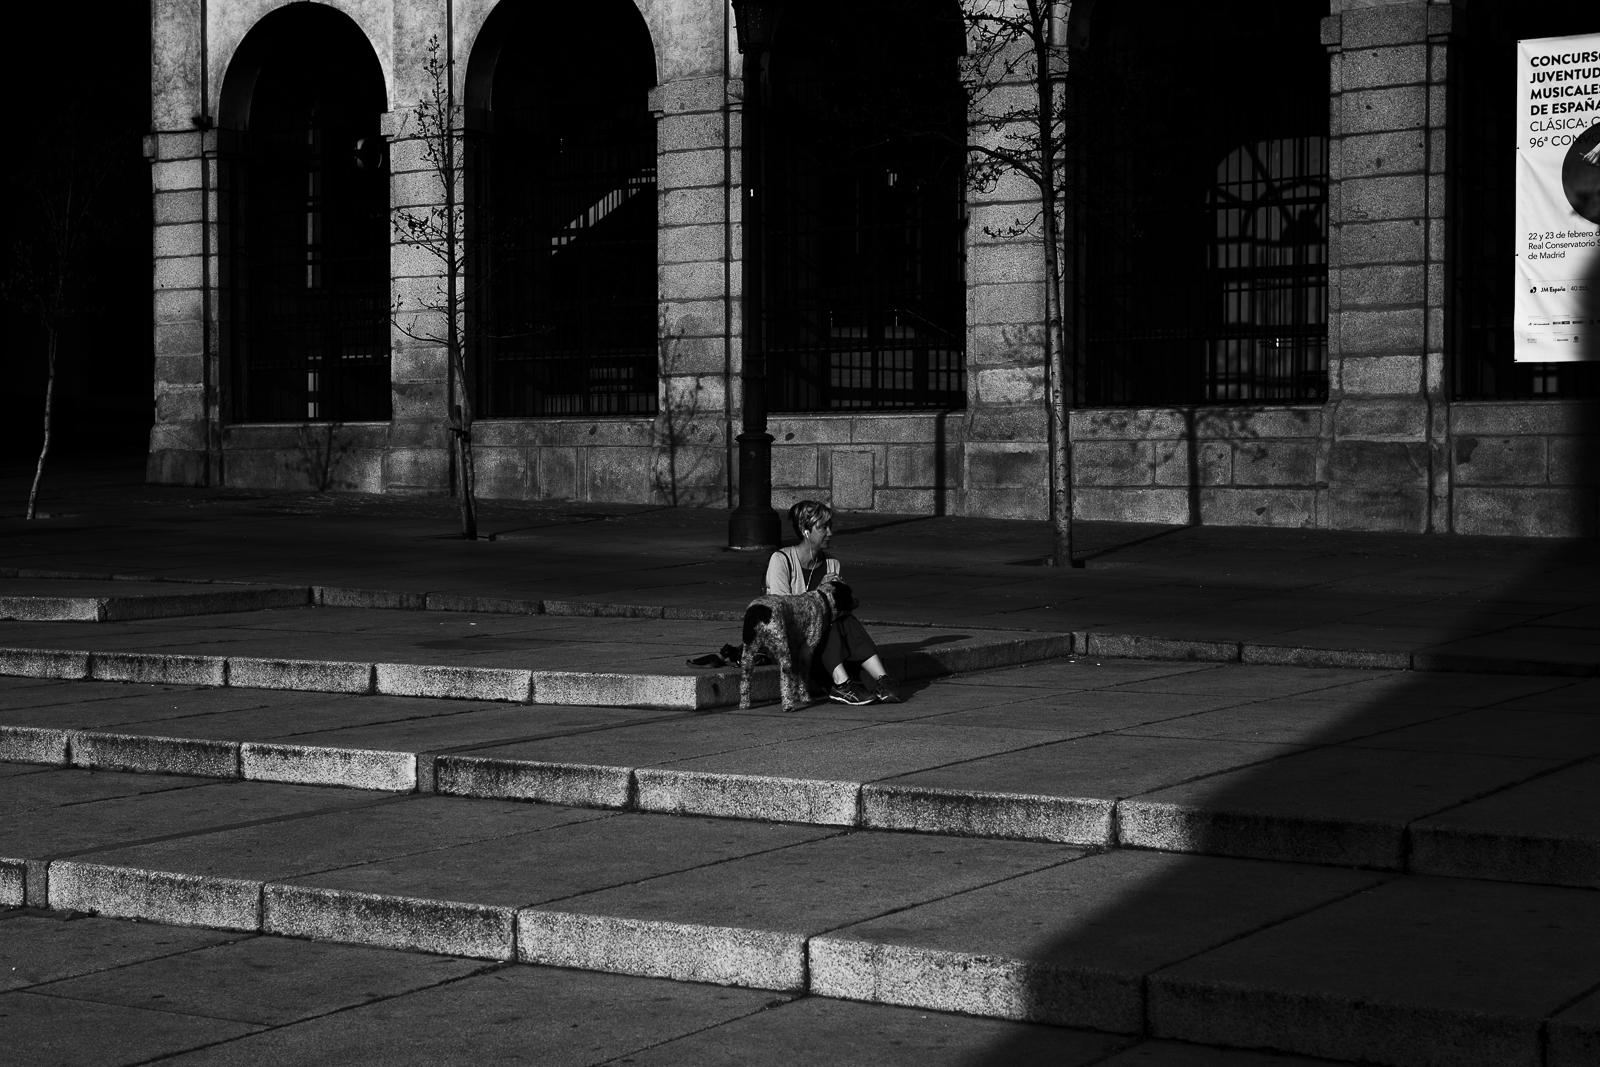 A woman with her dog is seen in a Plaza near the Reina Sofia Museum during the lockdown in the Spanish capital of Madrid.